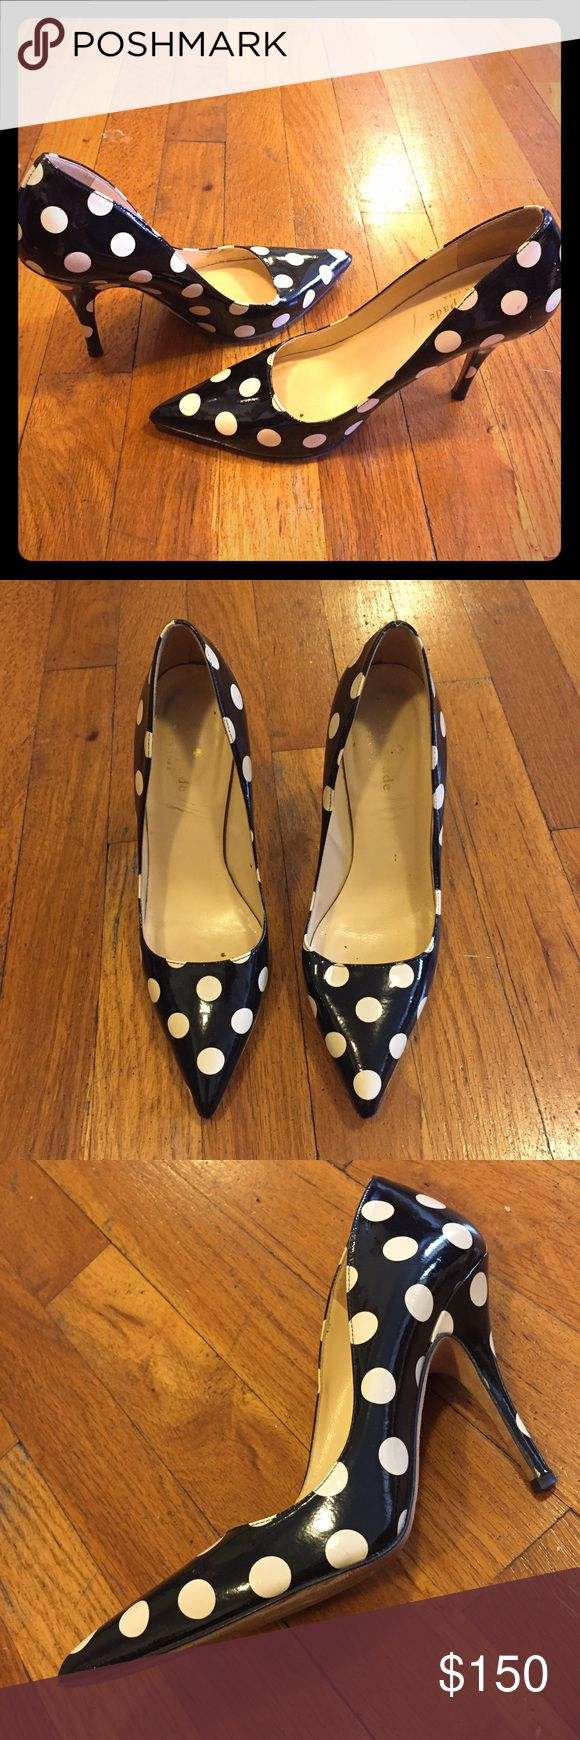 Kate Spade Licorice Polka Dot Pointed Toe Pumps Elegant and sleek pointed toe high heels with pops of playful polka dots! 4 inch heels. Make an offer! kate spade Shoes Heels